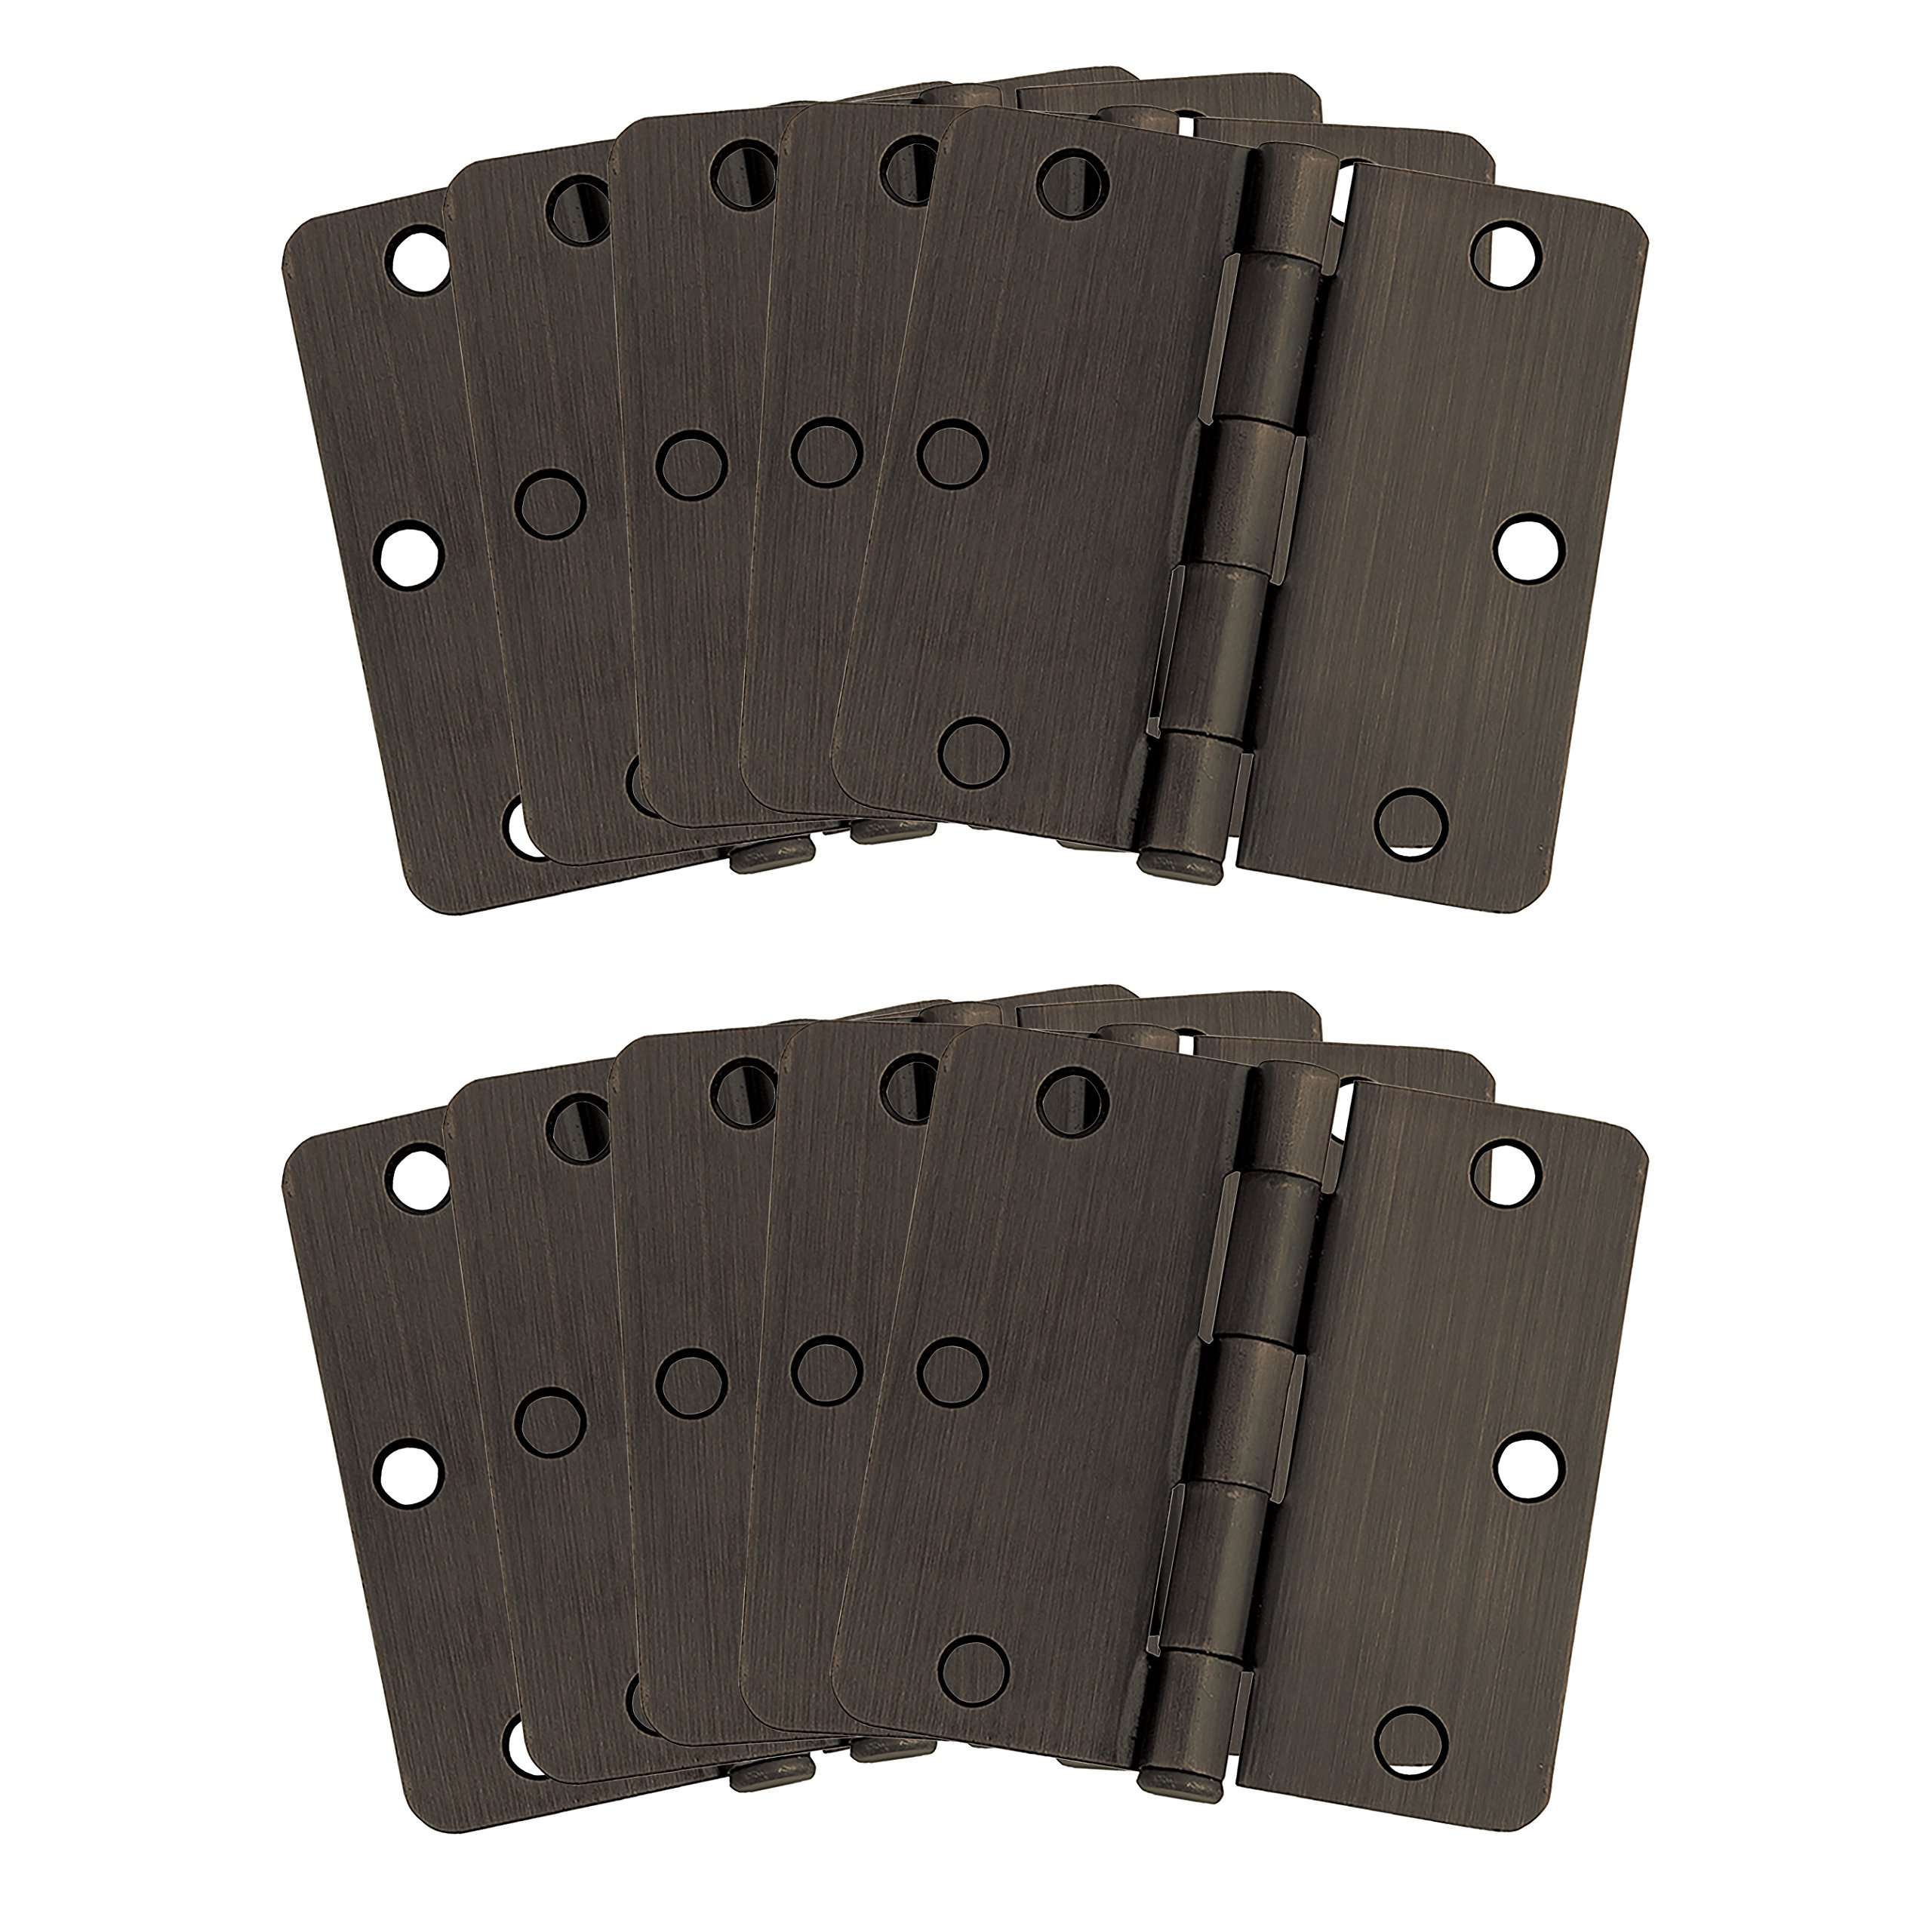 Design House 181388 10-Pack Hinge 3.5'', Oil Rubbed Bronze